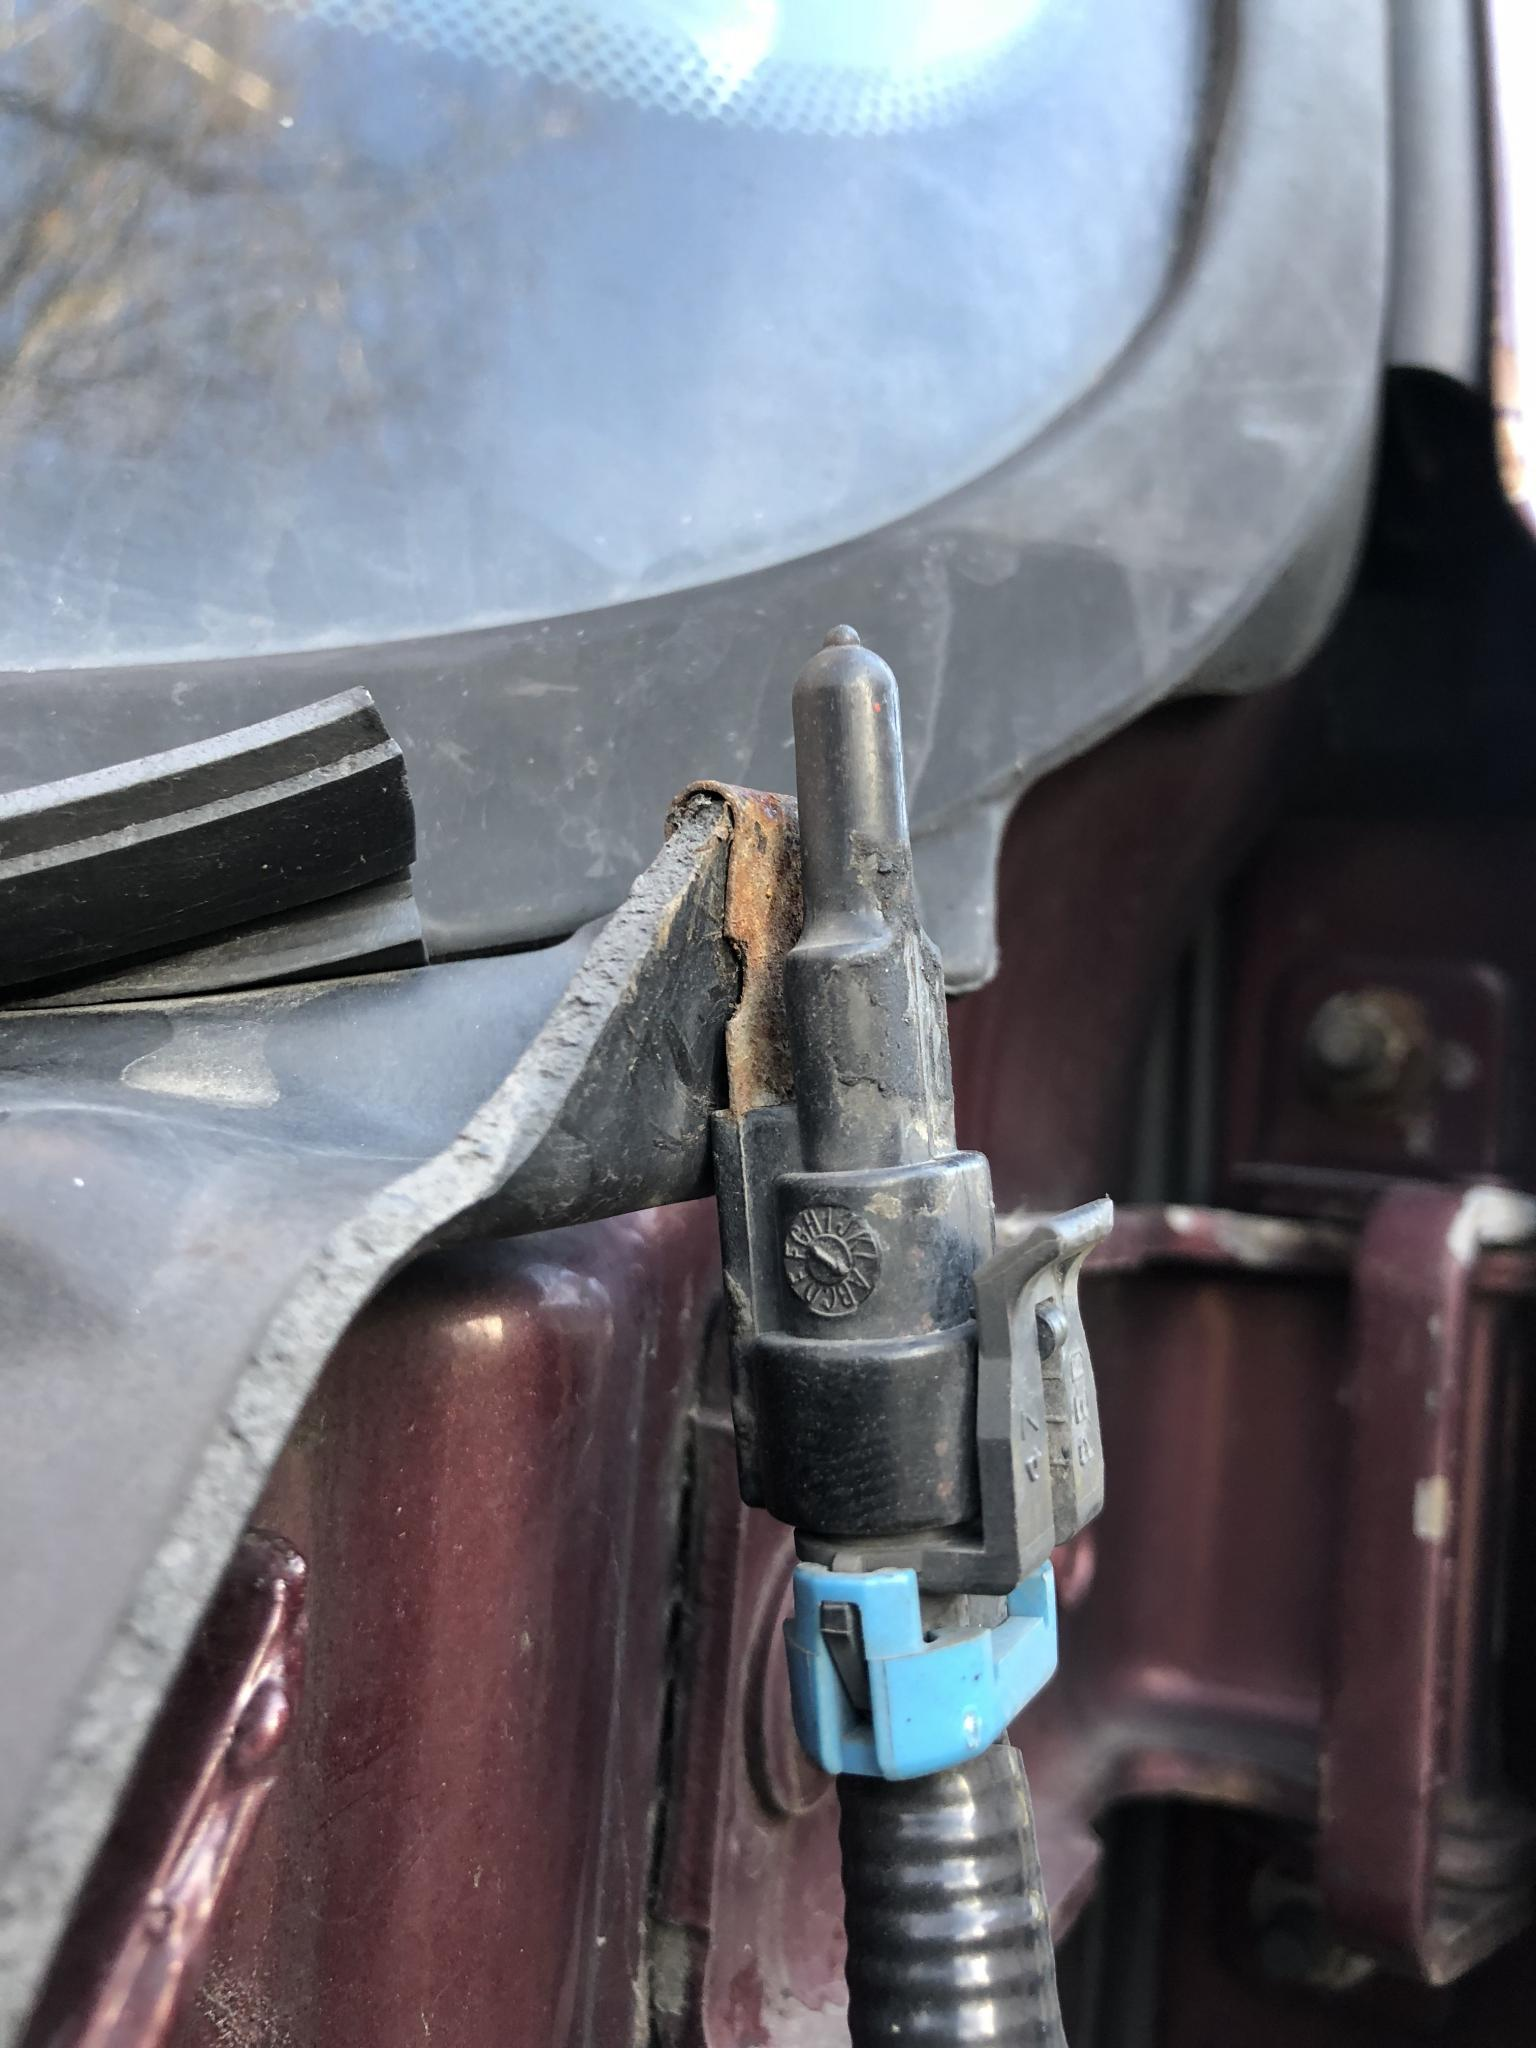 ProStar AC/Heater Blower Motor acting up?